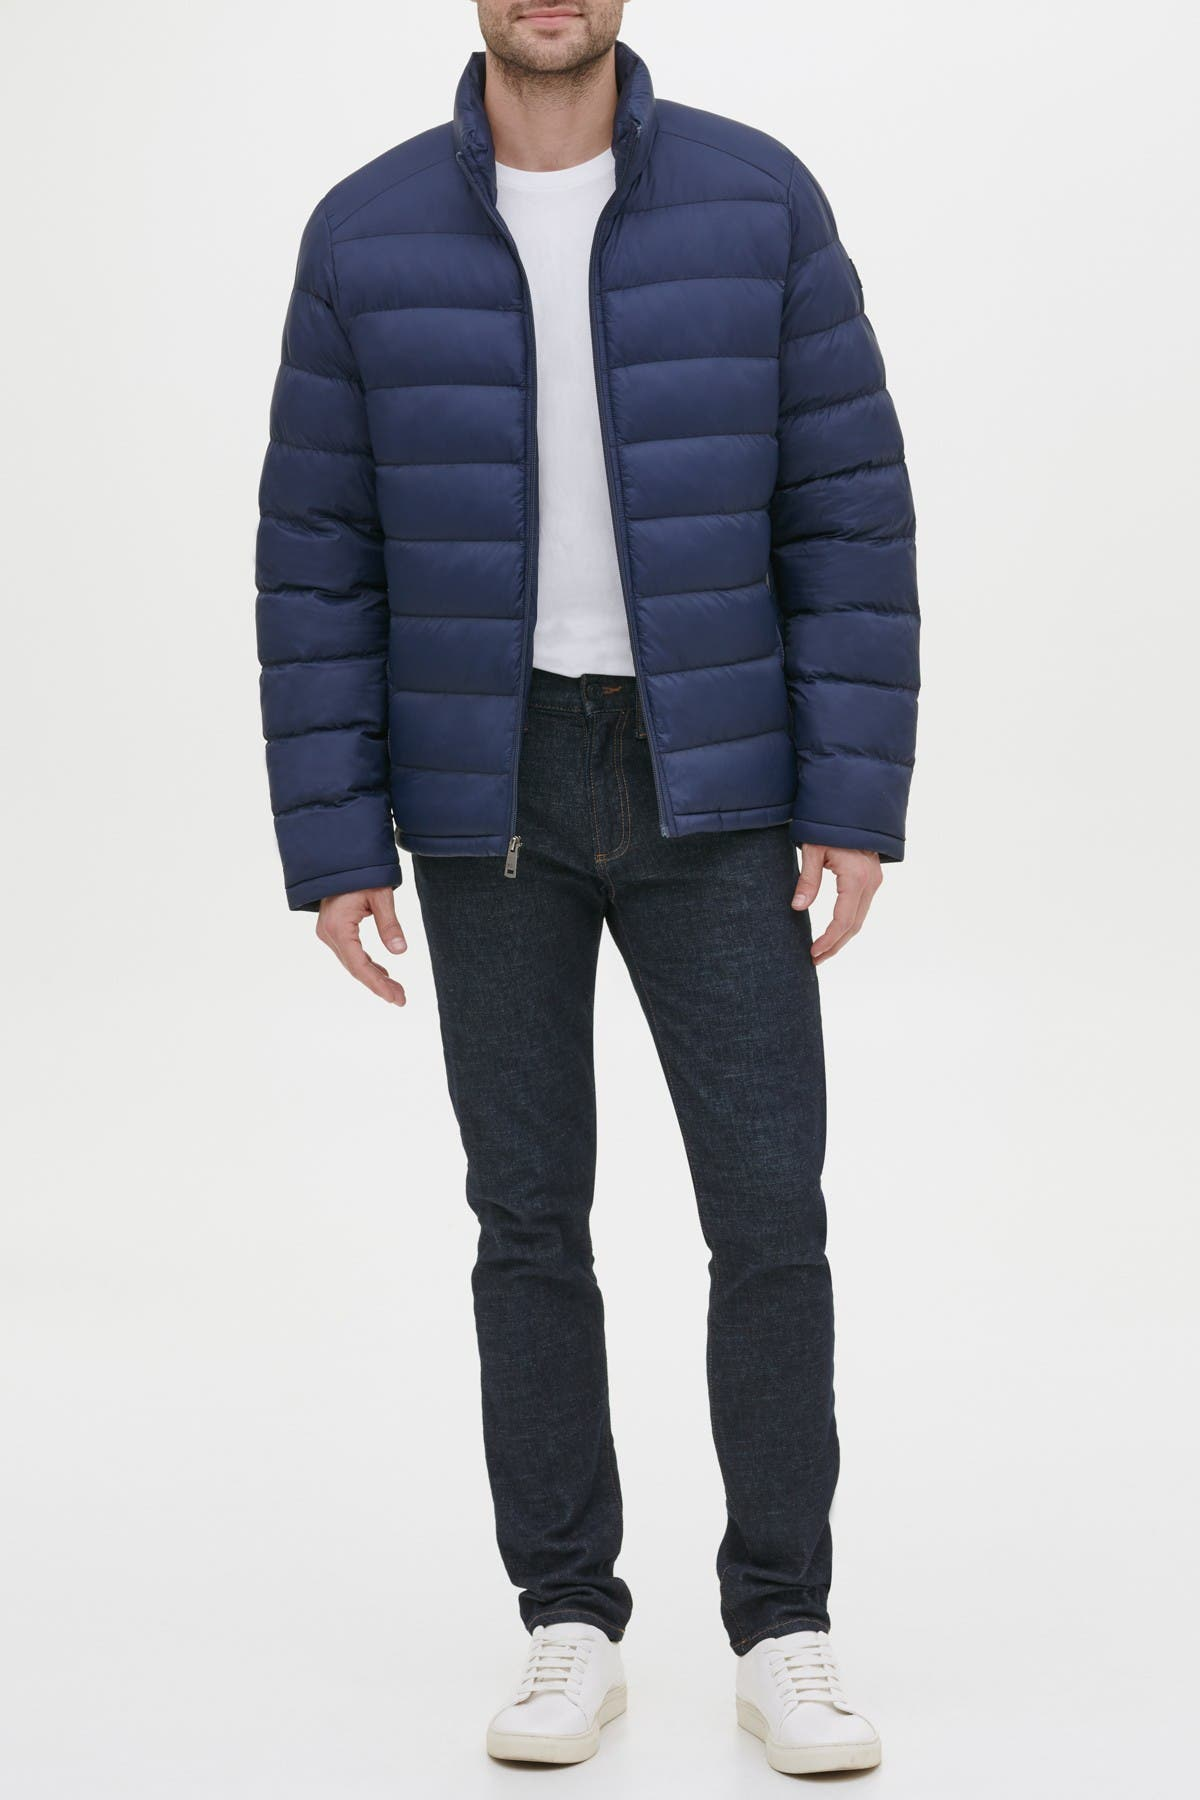 Image of KENNETH COLE Horizontal Midweight Quilted Puffer Jacket